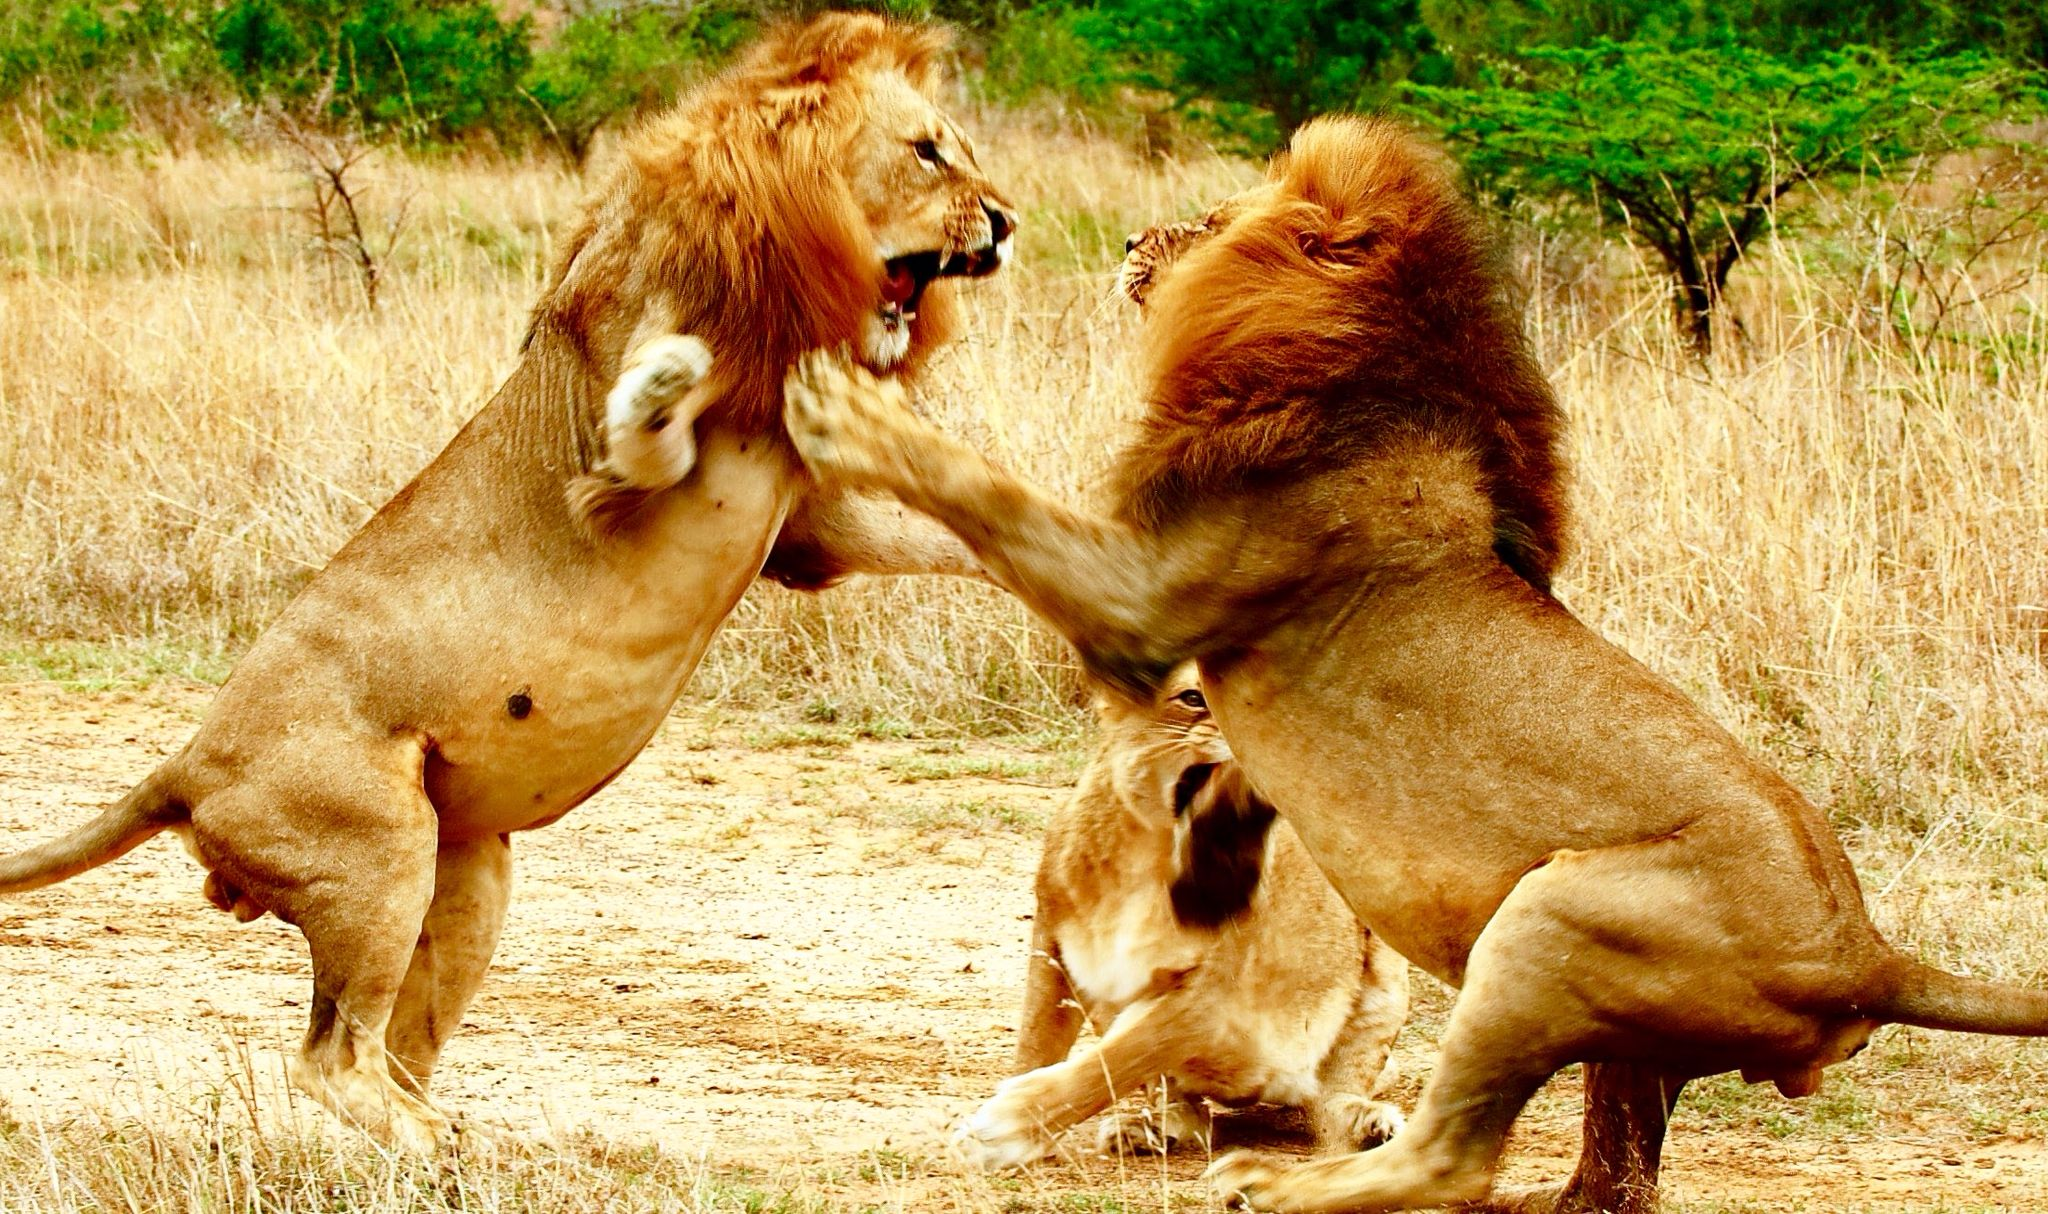 Lions fighting! Animals wild, Wild animals photos, Lion